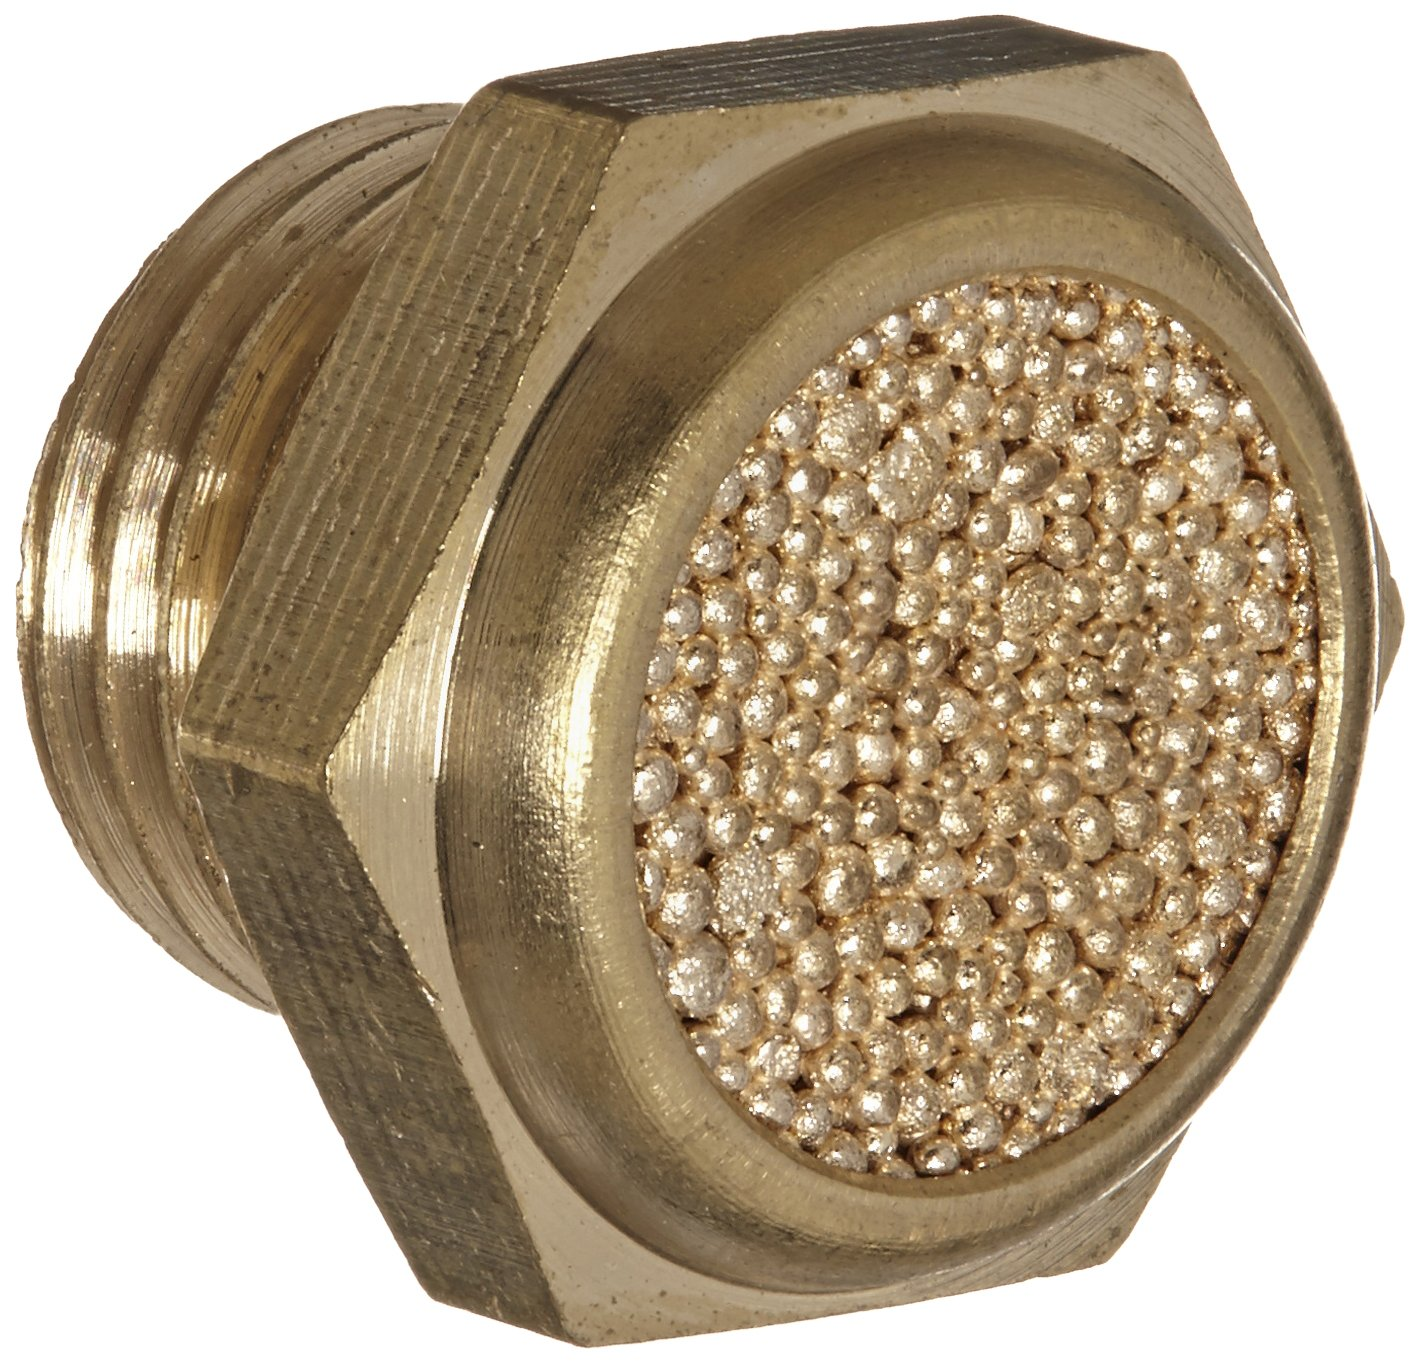 Legris Challenge Overseas parallel import regular item the lowest price of Japan ☆ 0673 00 13 Sintered Bronze BSPP Silencer Male 1 4